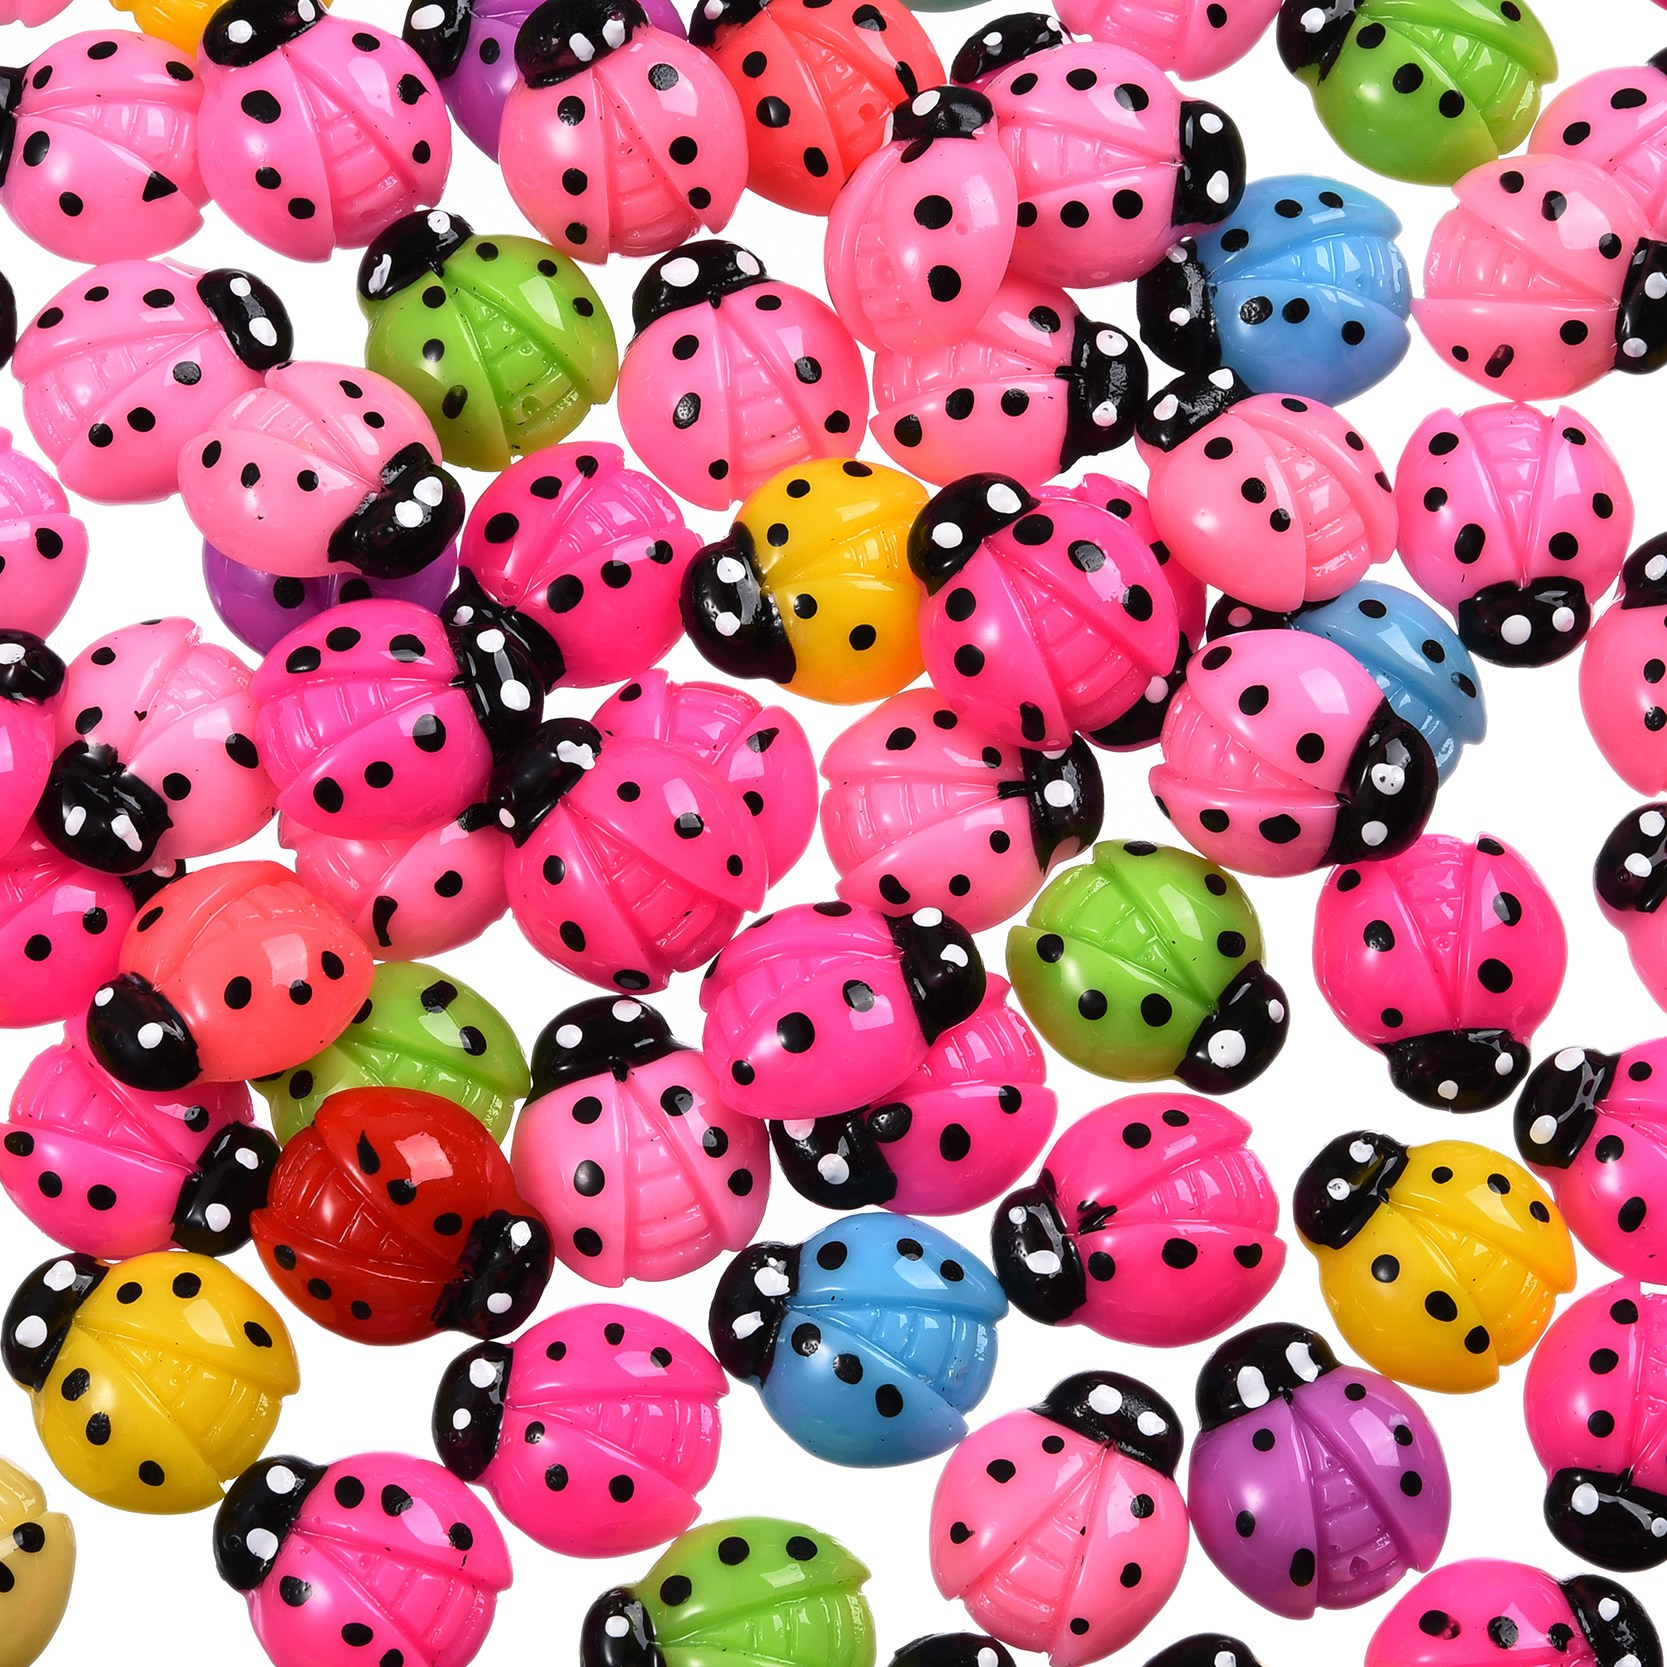 Home Wedding Decoration 100pcs  Polka Dot Ladybug Cabochons Scrapbook Cell phone decor, hair accessory supply, embellishment